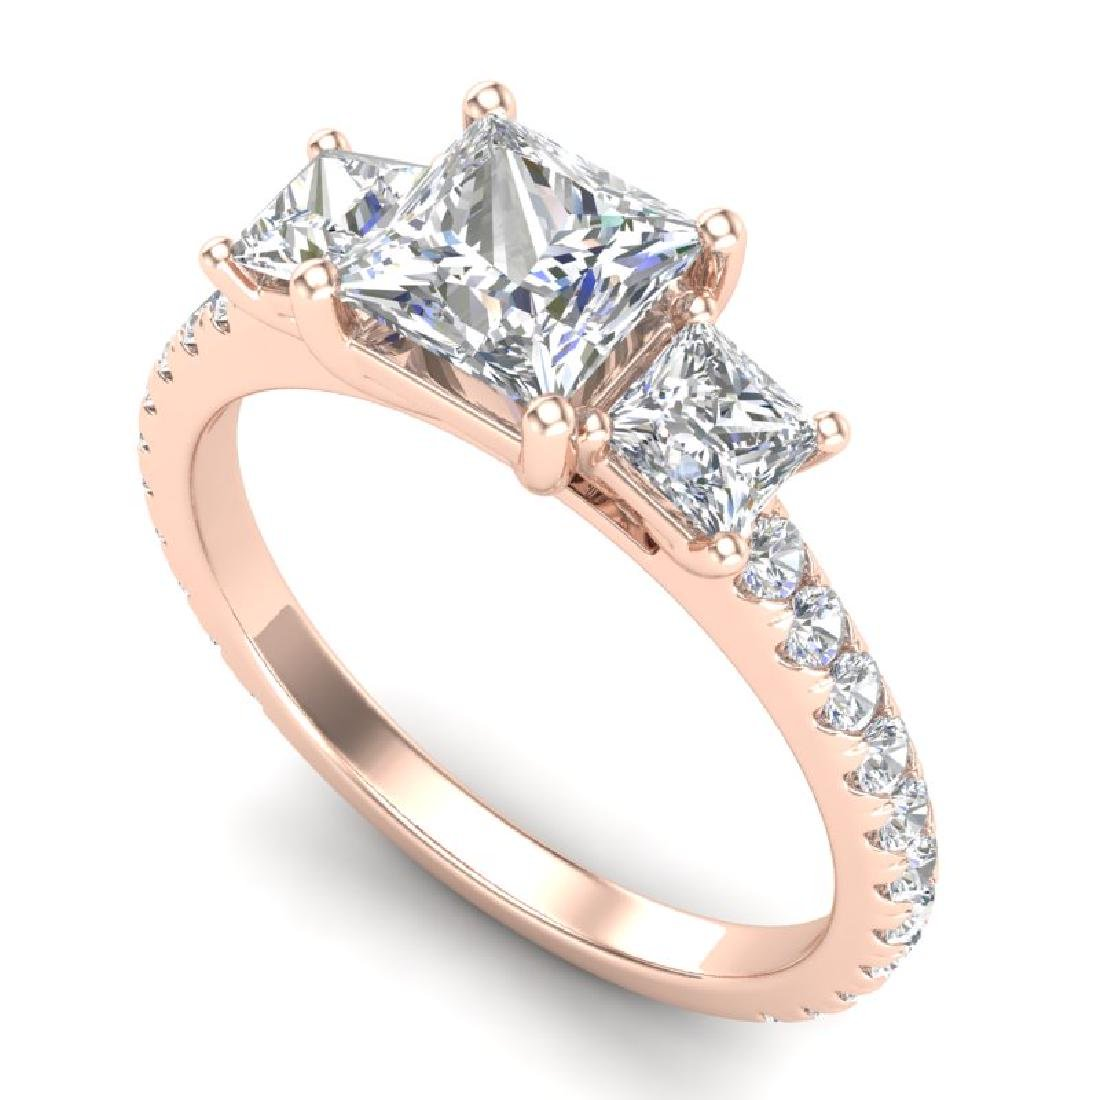 2.14 CTW Princess VS/SI Diamond Art Deco 3 Stone Ring